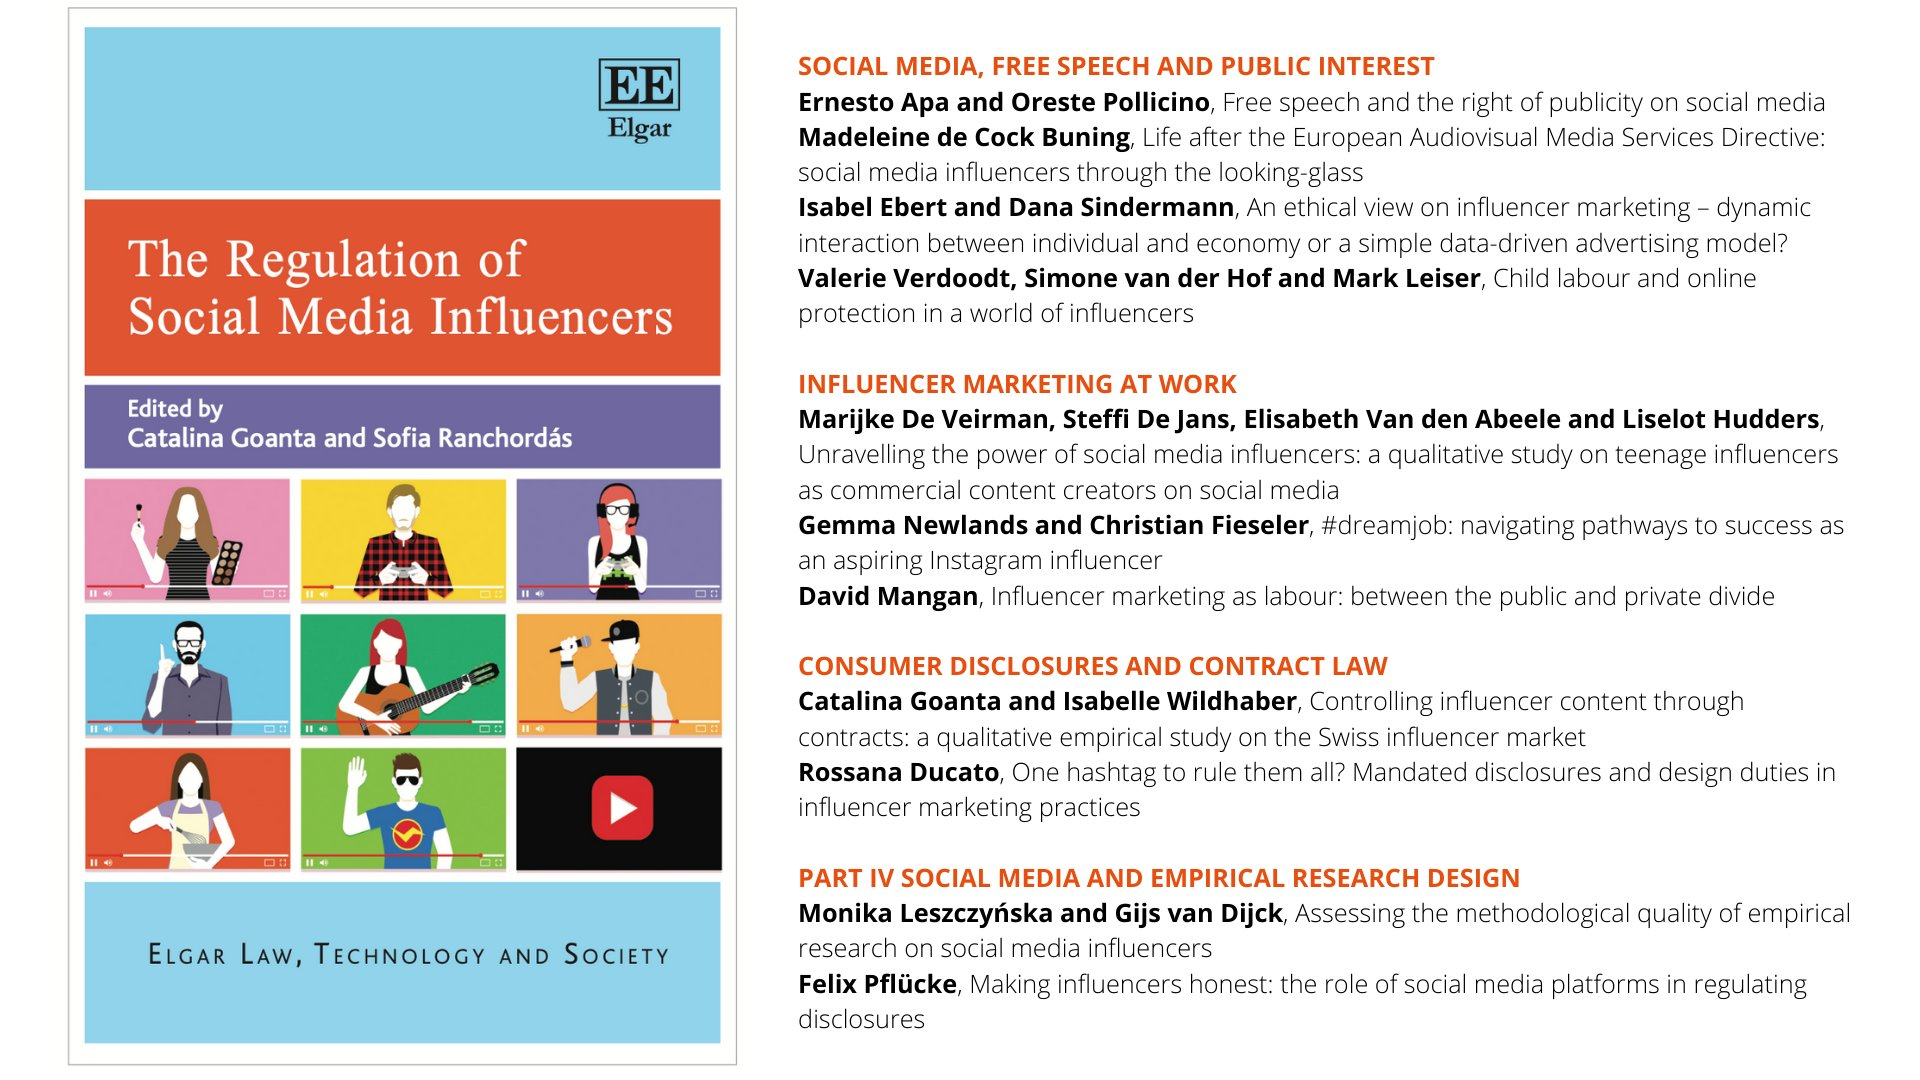 Catalina Goanta On Twitter Almost Out 1st Eu Comprehensive Law Comms Ethics Look At Social Media Influencers Edited With My Dear Friend Sranchordas With Exceptional Contributions On Disclosures Aspirational Work Research